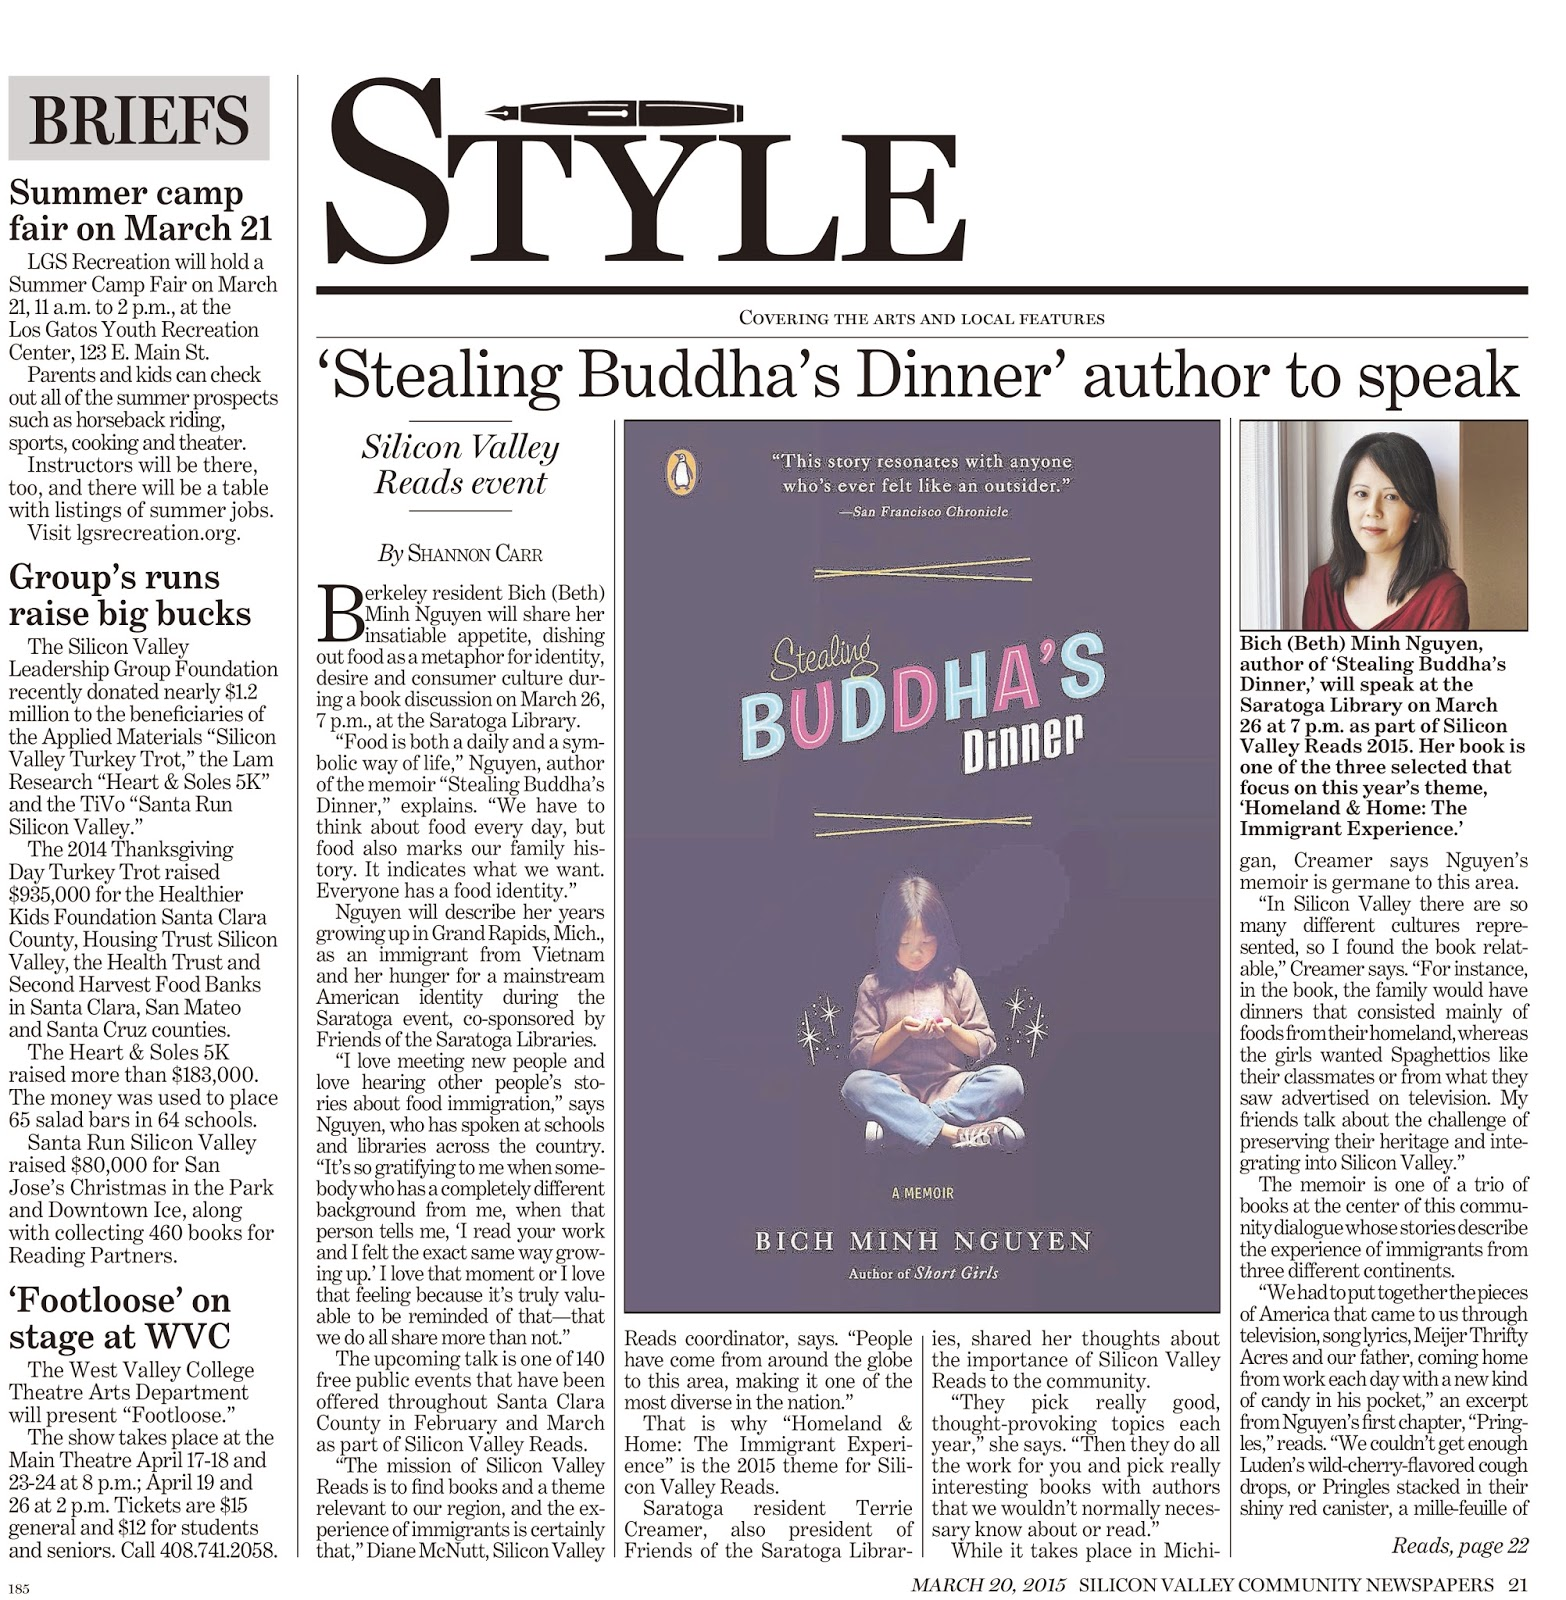 stealing buddhas dinner essay The book stealing buddhas dinner a memoir by nguyen bich minh 2008 paperback by only can help you to realize having the book to read every time.